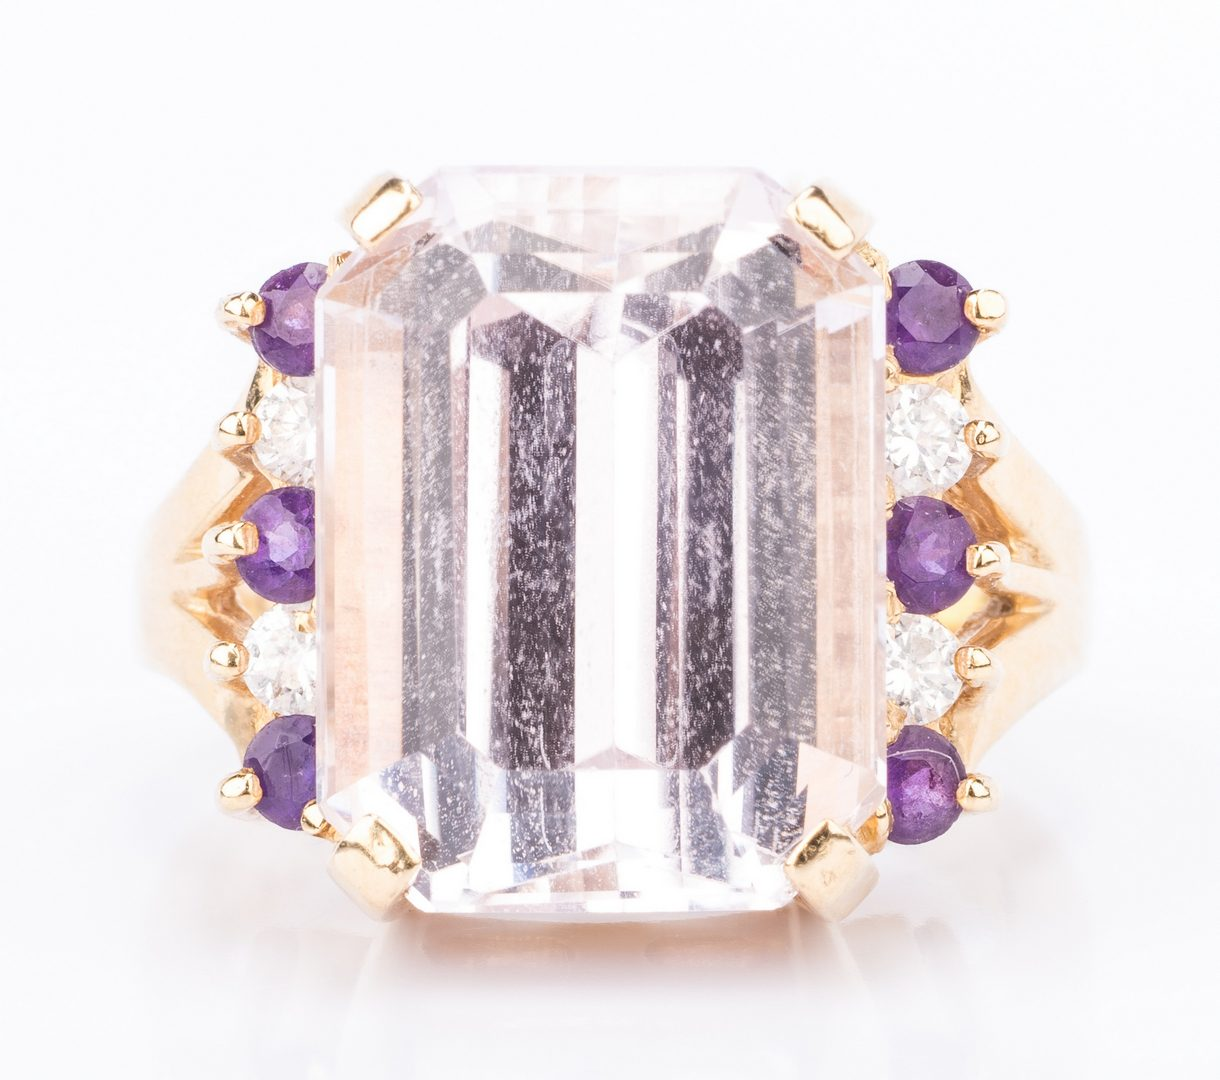 Lot 382: 18K Kunzite Ring with 4 Diamonds & 6 Amethyst